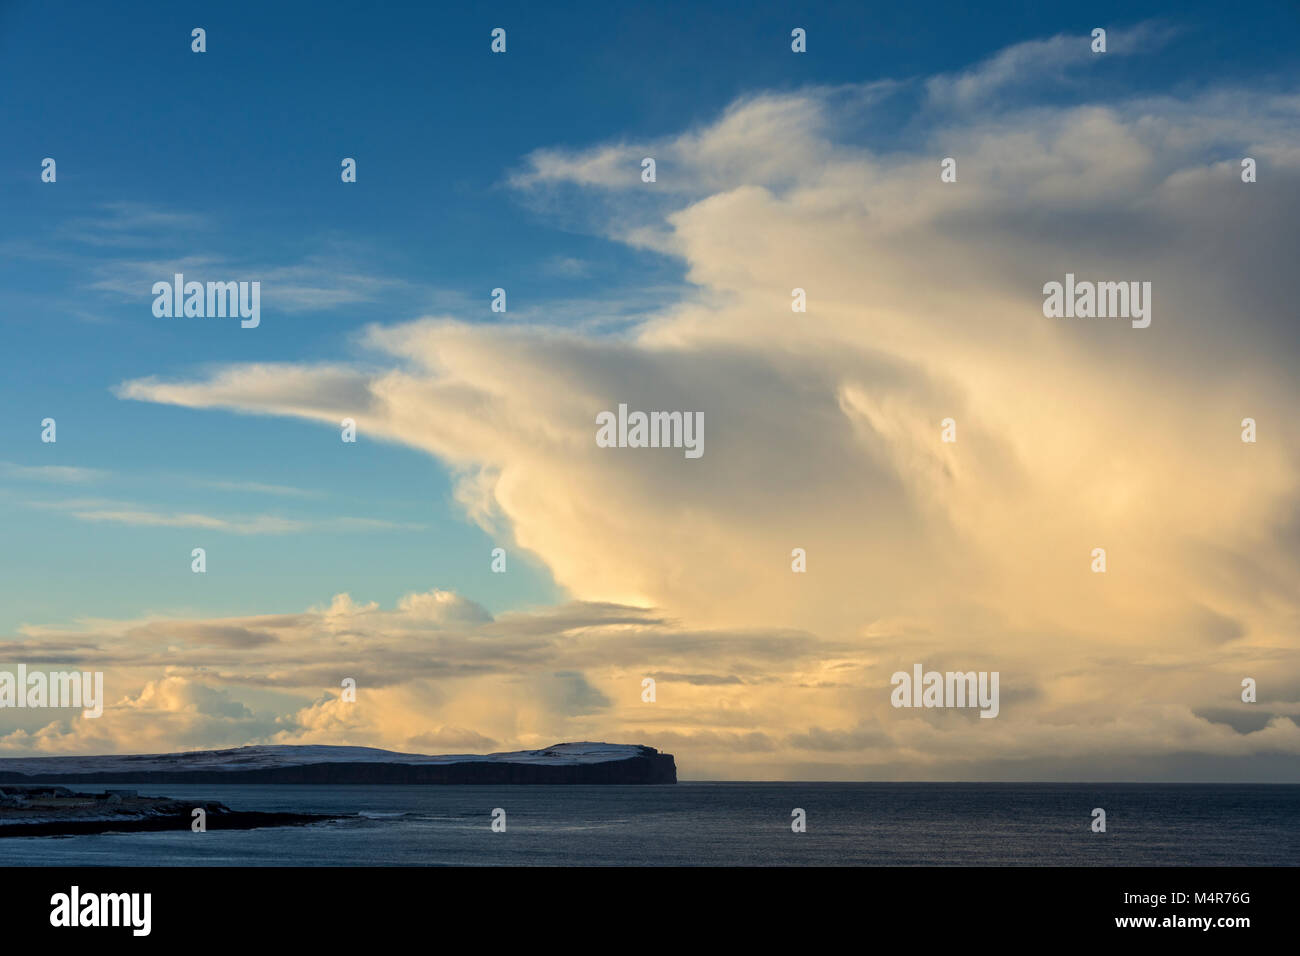 Cumulonimbus cloud over Dunnet Head and the Pentland Firth, from near the village of Mey, Caithness, Scotland, UK - Stock Image